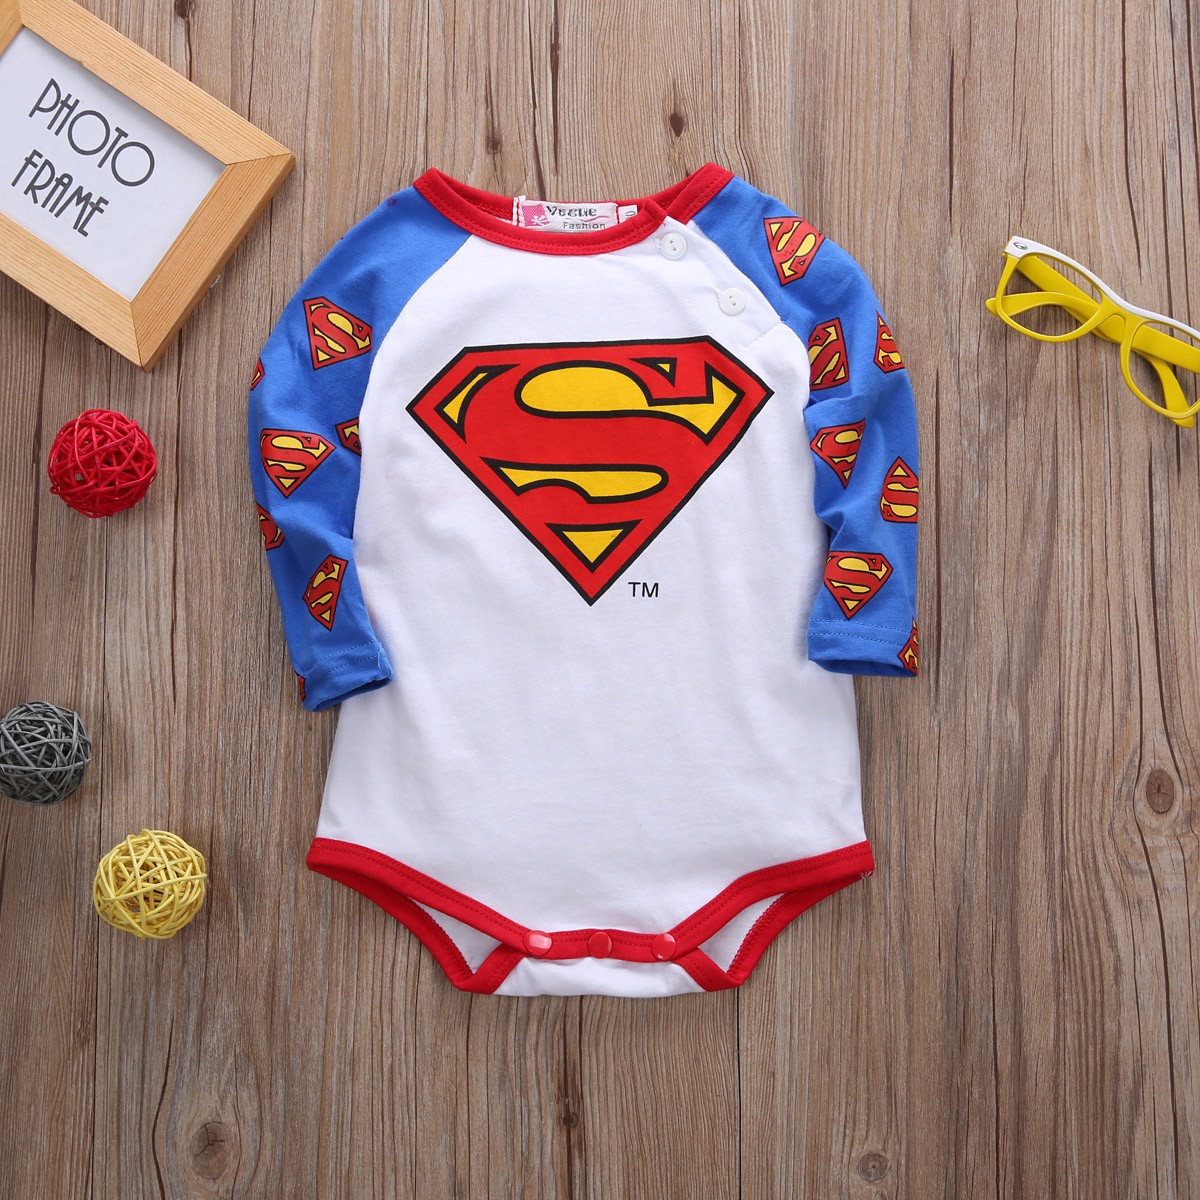 Newborn Infant Kids Baby Boy Girl Clothes Long Sleeve  Bodysuit Outfits 0-24M